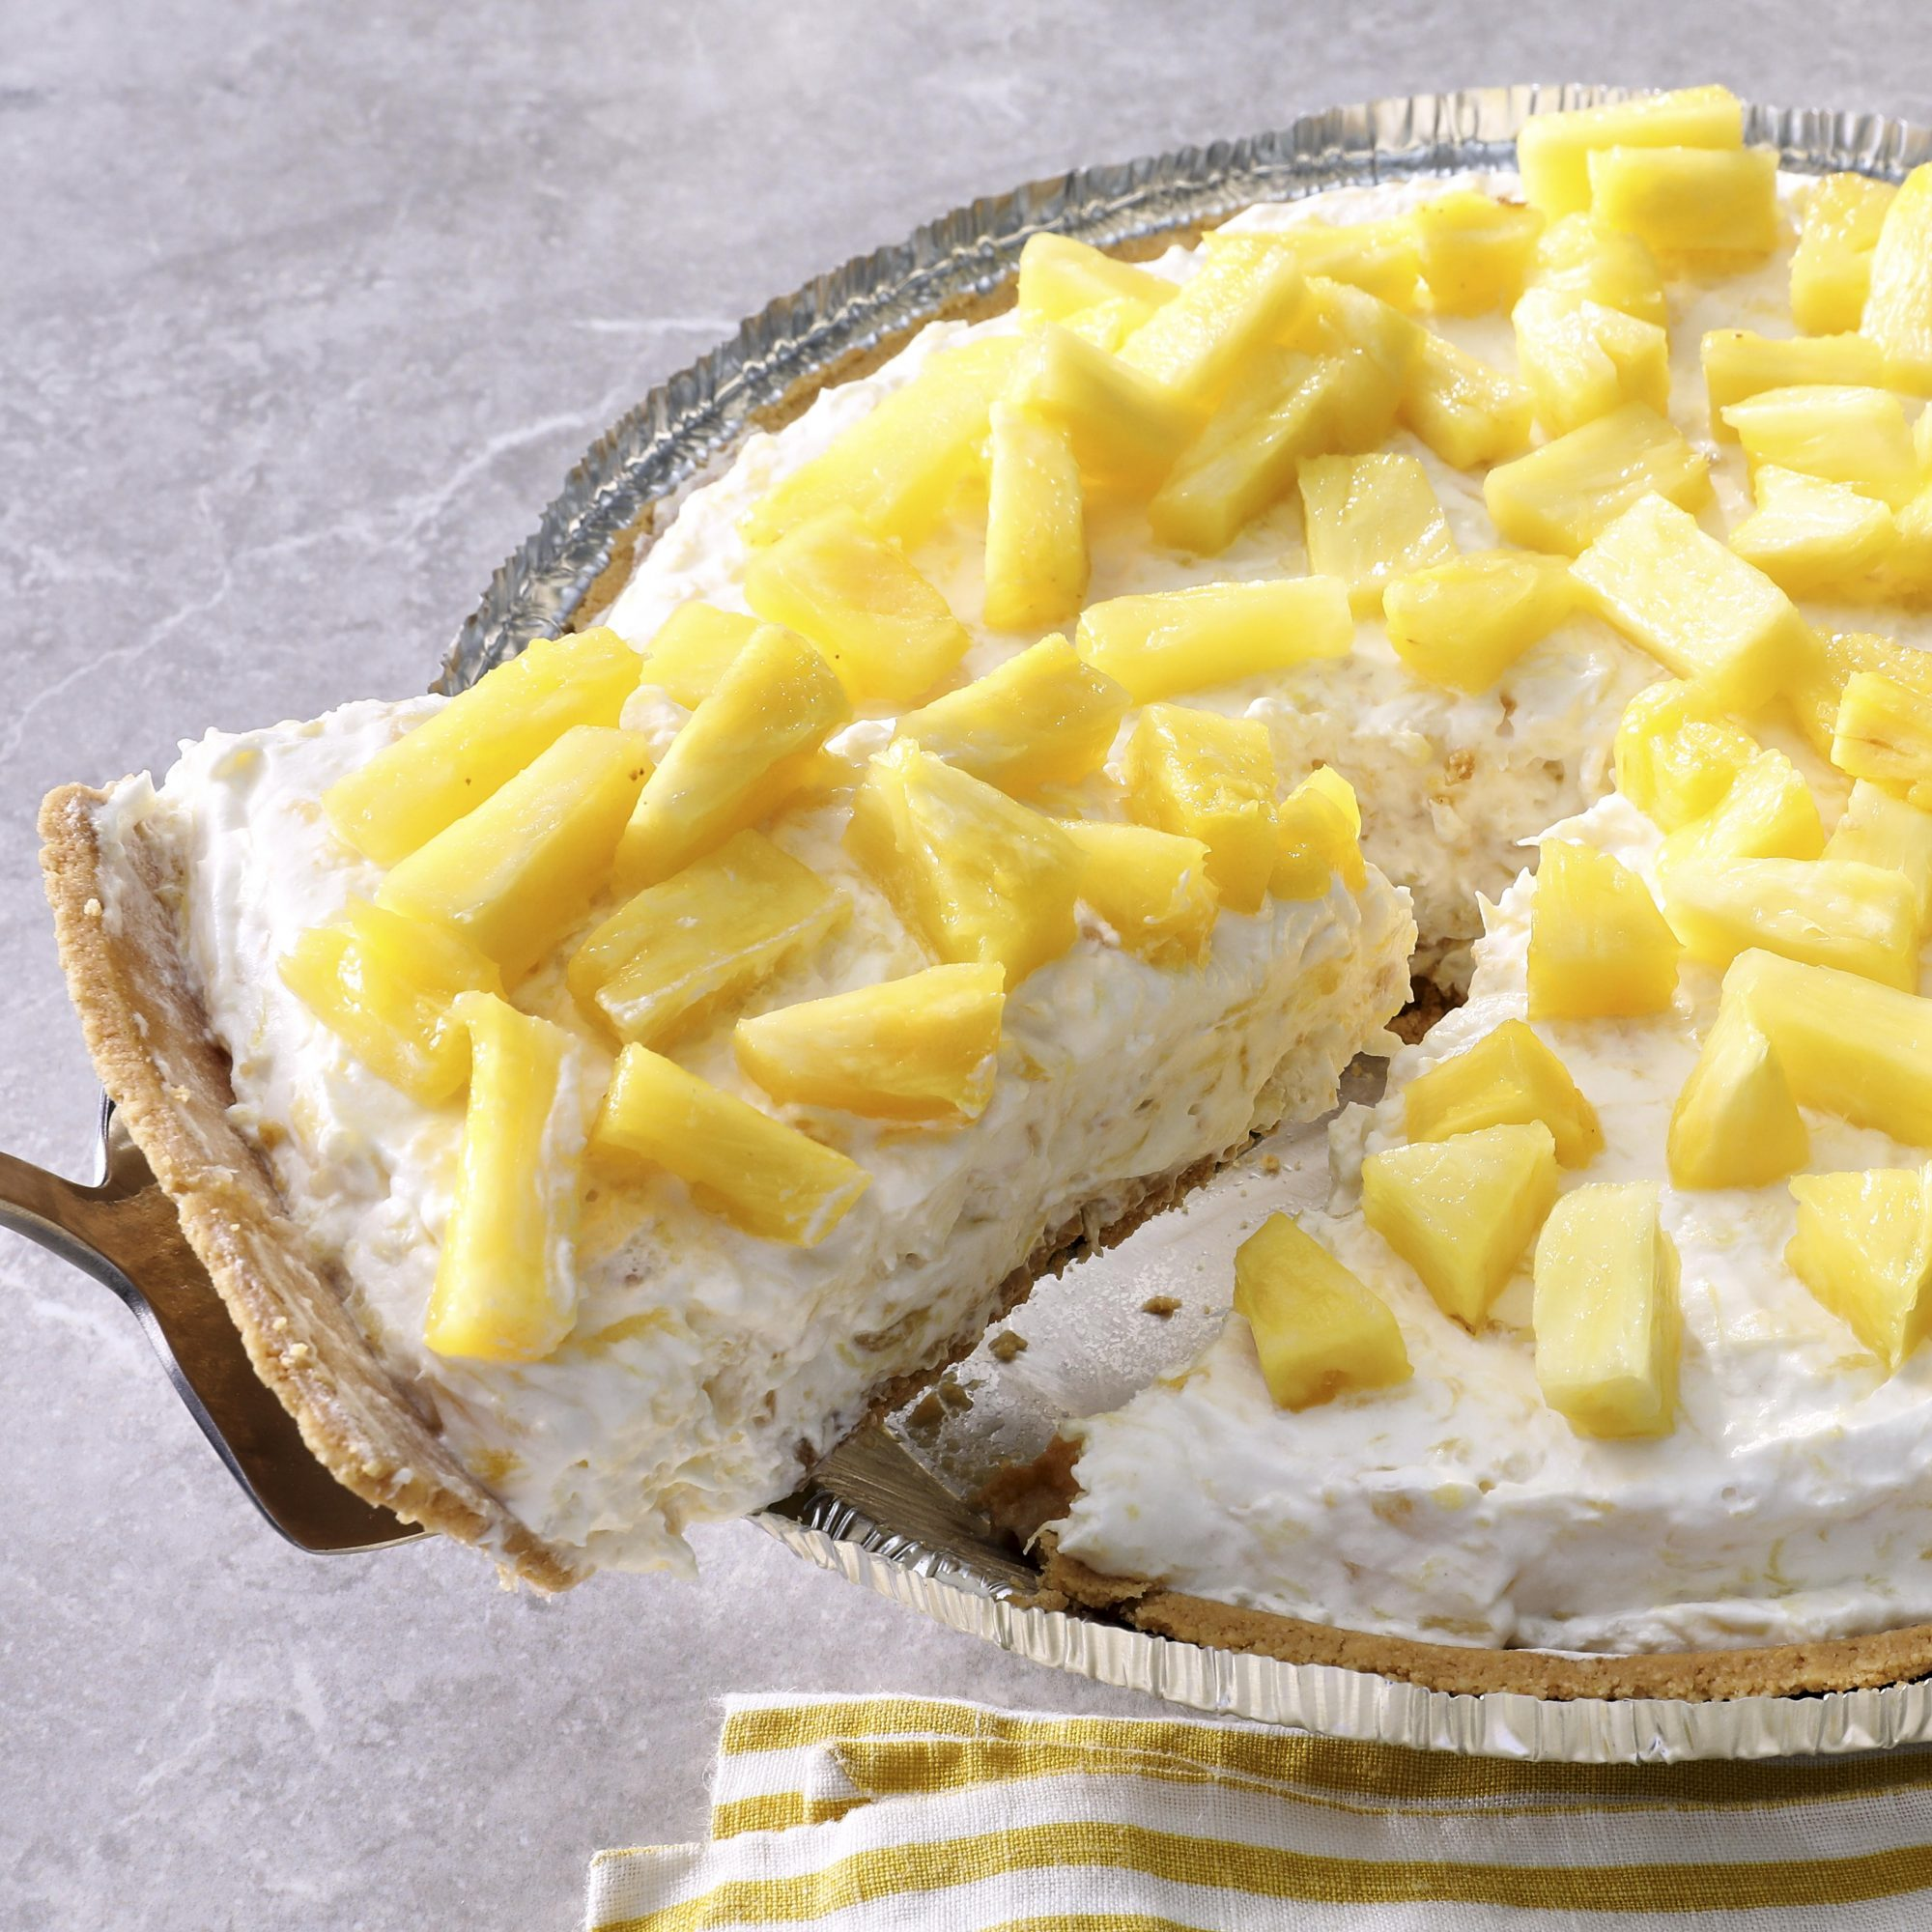 Pineapple cheesecake with slice removed